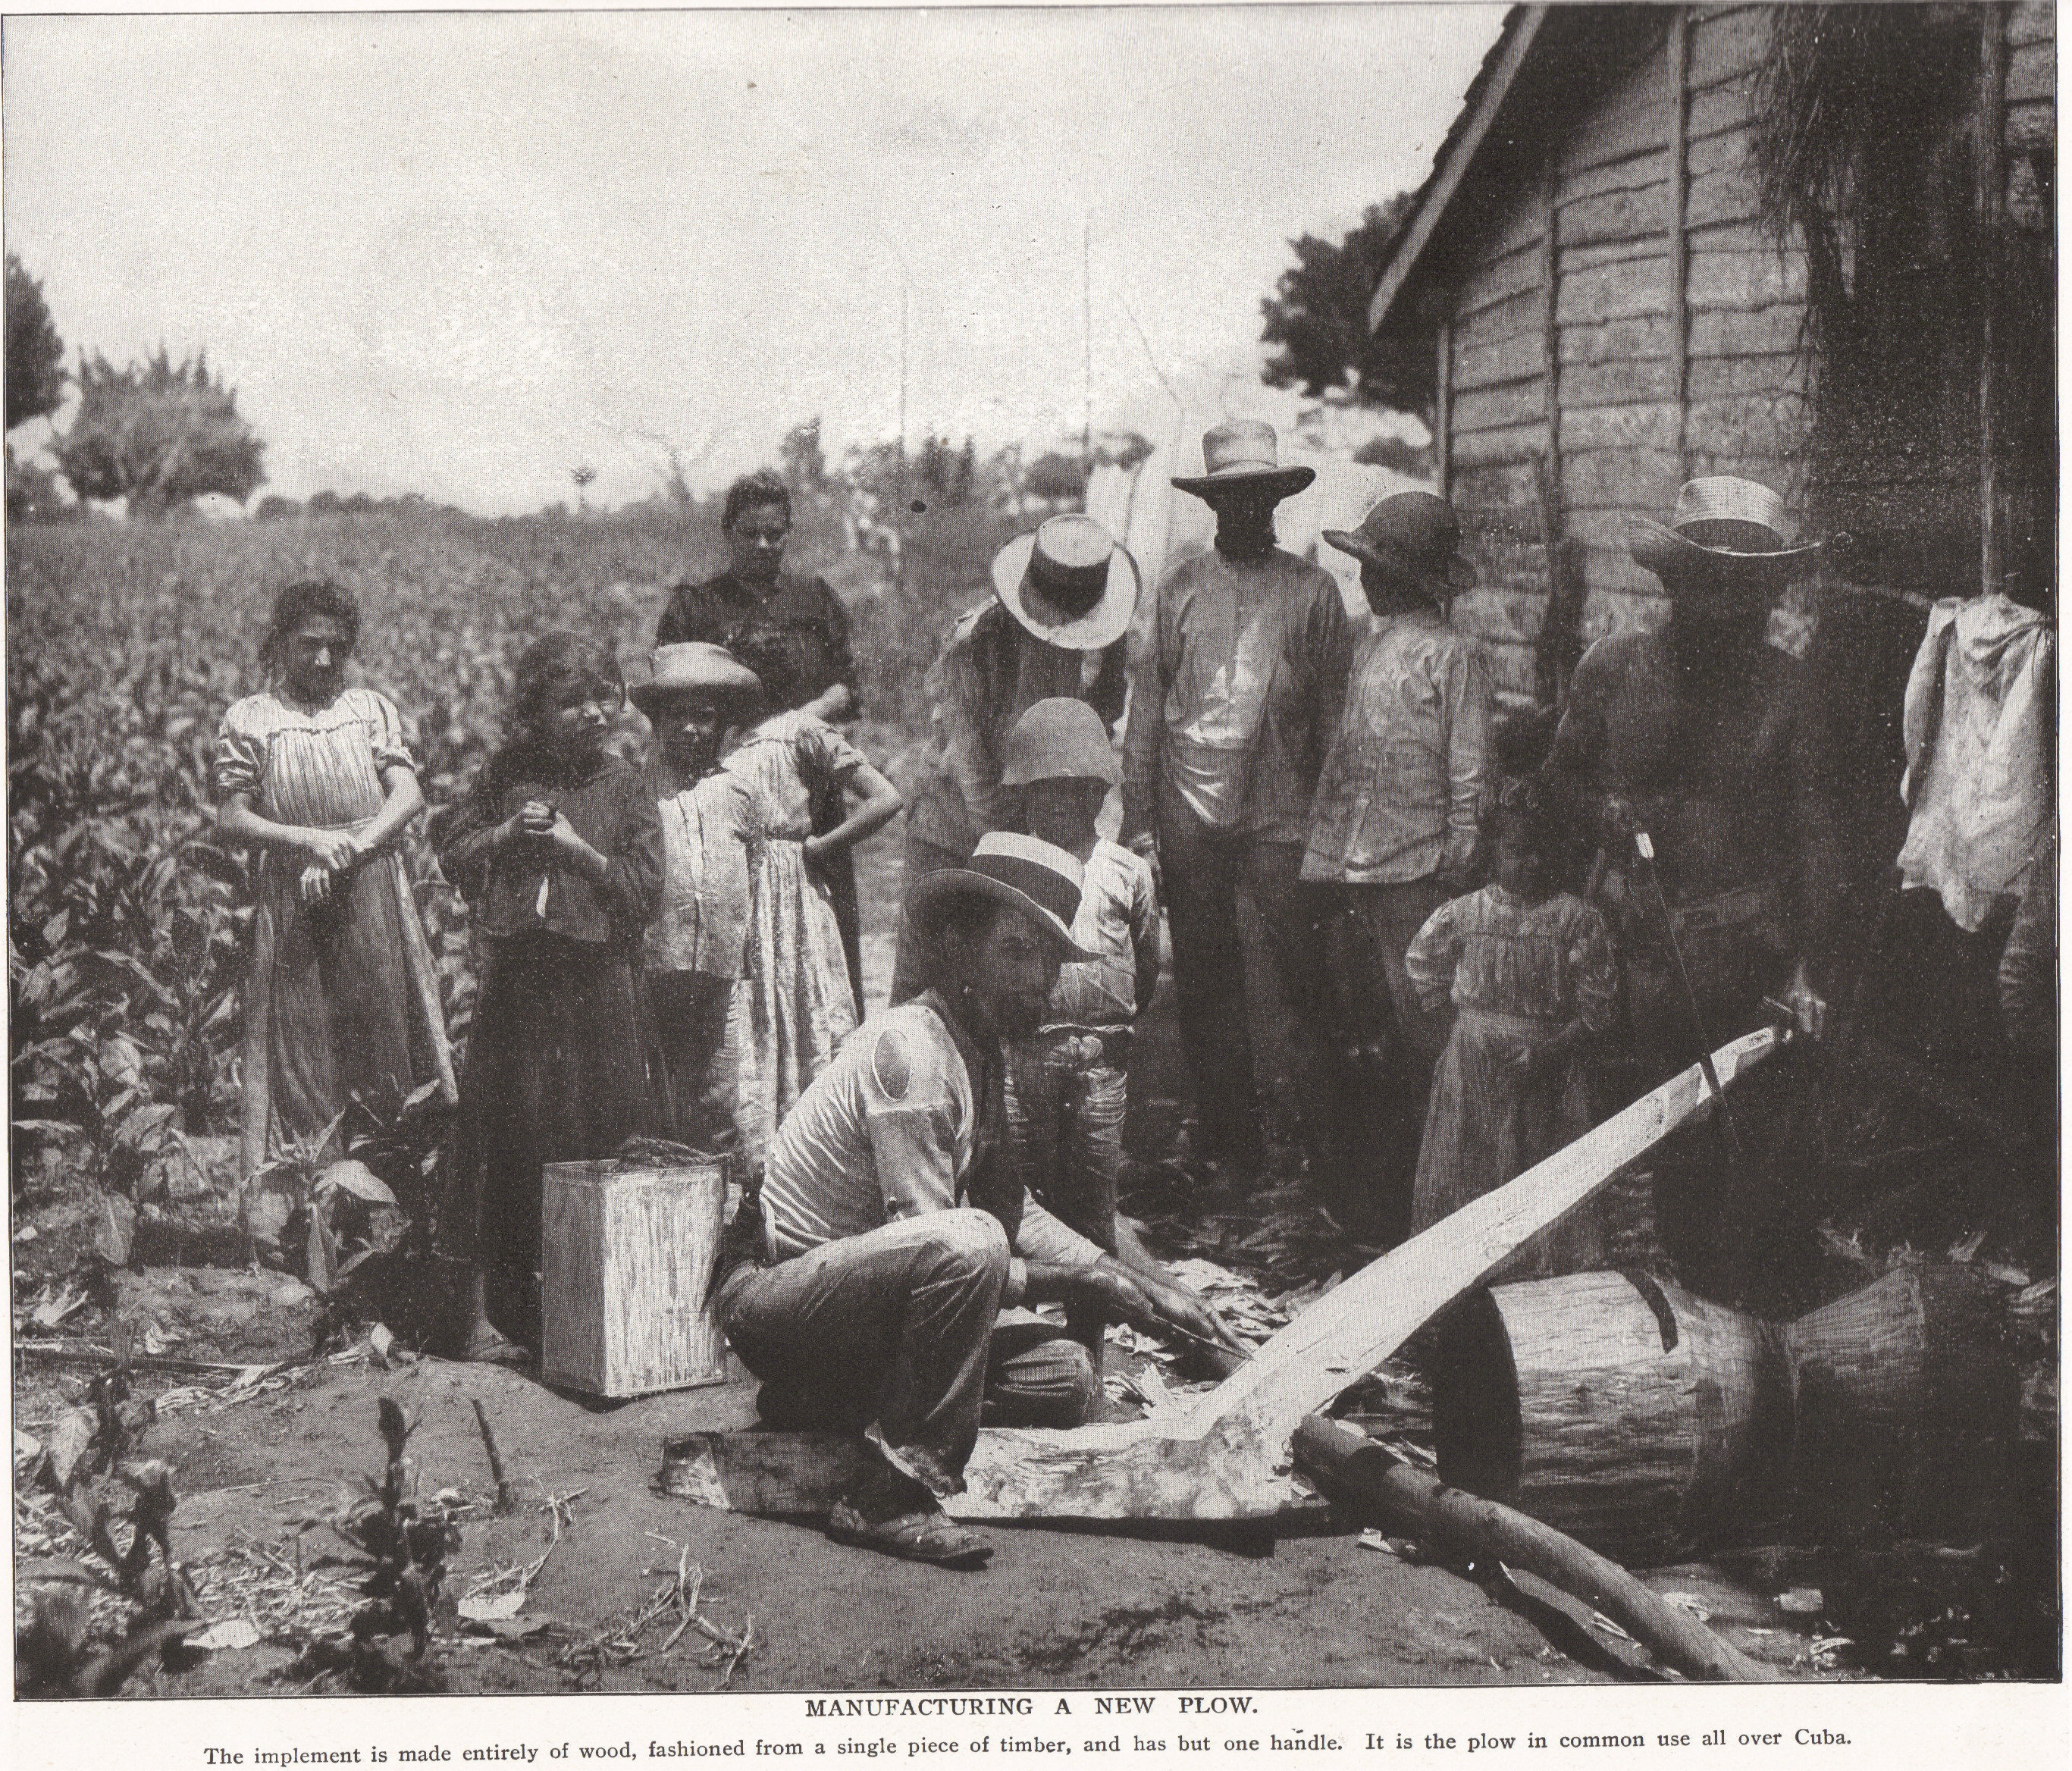 Manufacturing a New Plow in Cuba, 1898